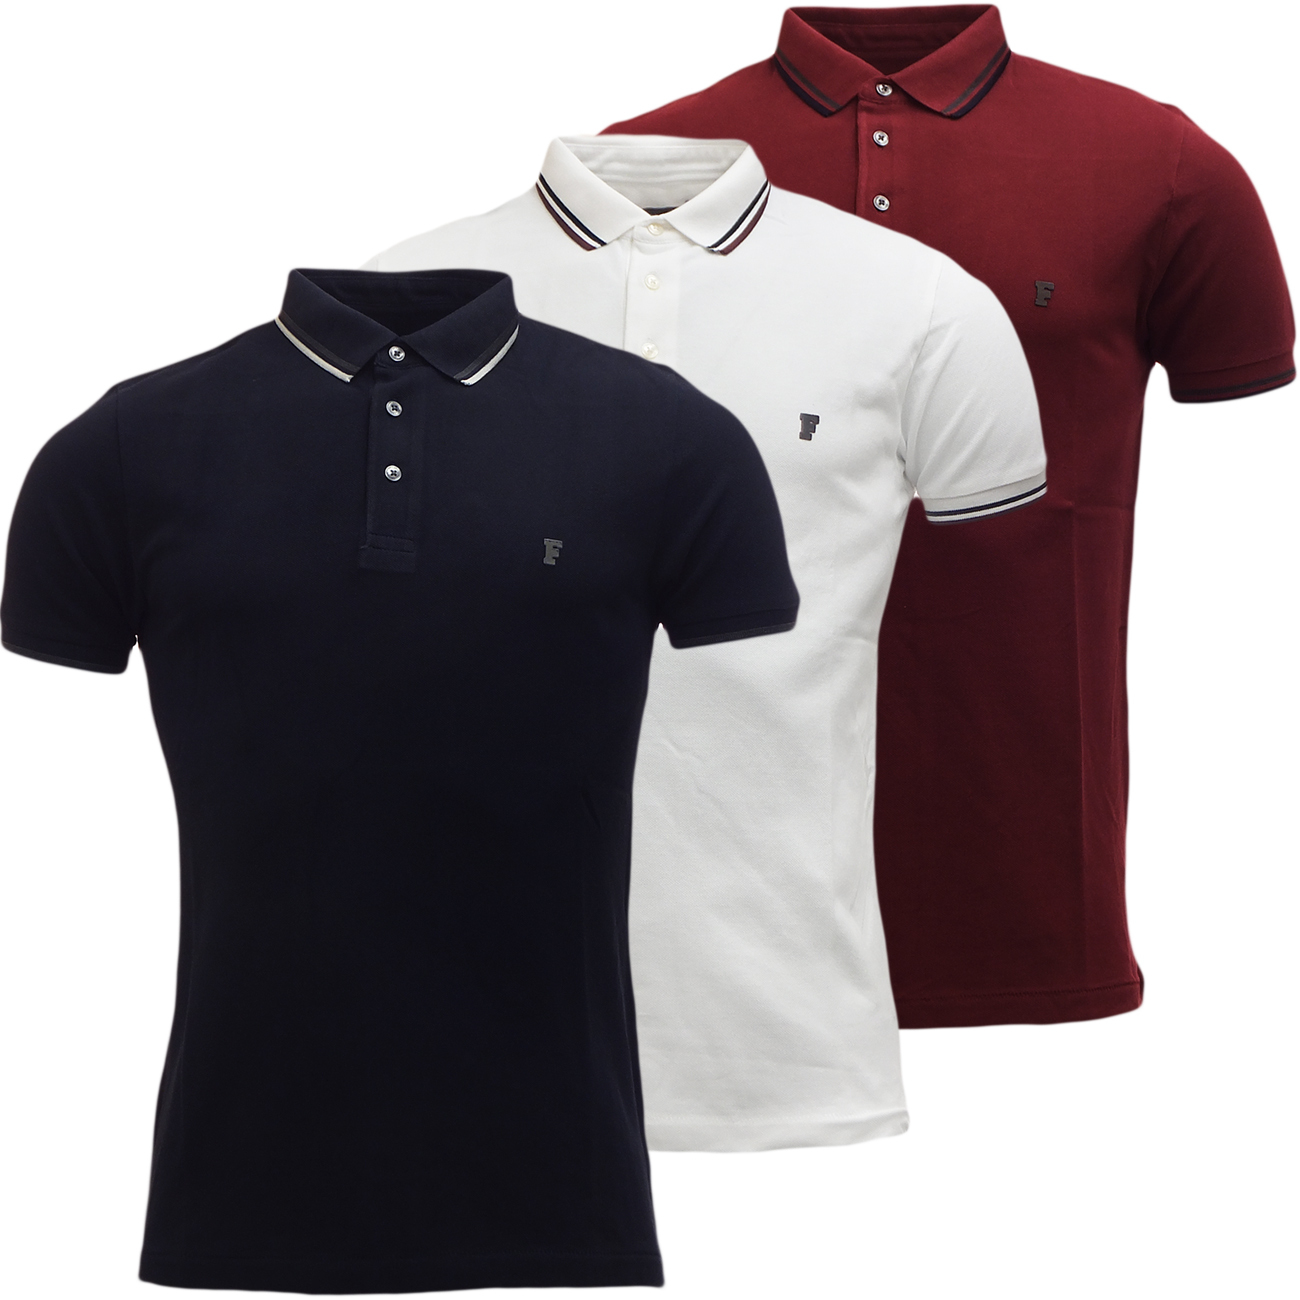 Fcuk Polo Shirt 56CCM